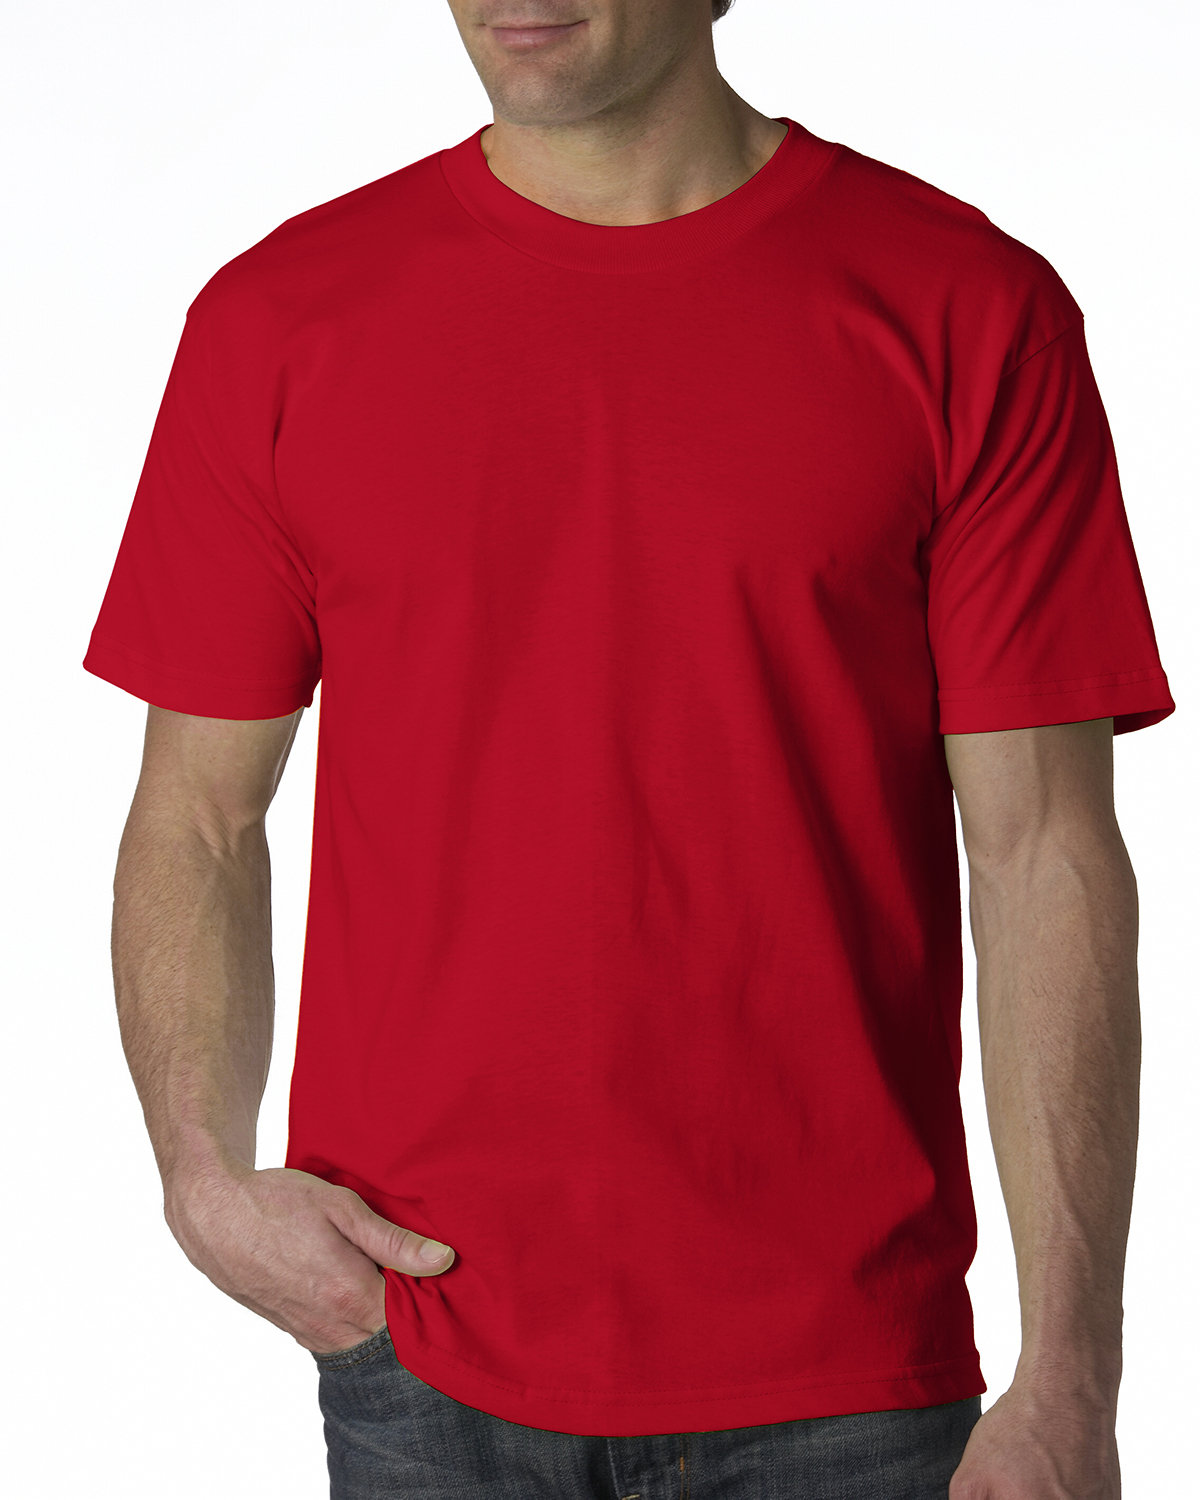 Bayside Adult 6.1 oz., 100% Cotton T-Shirt RED